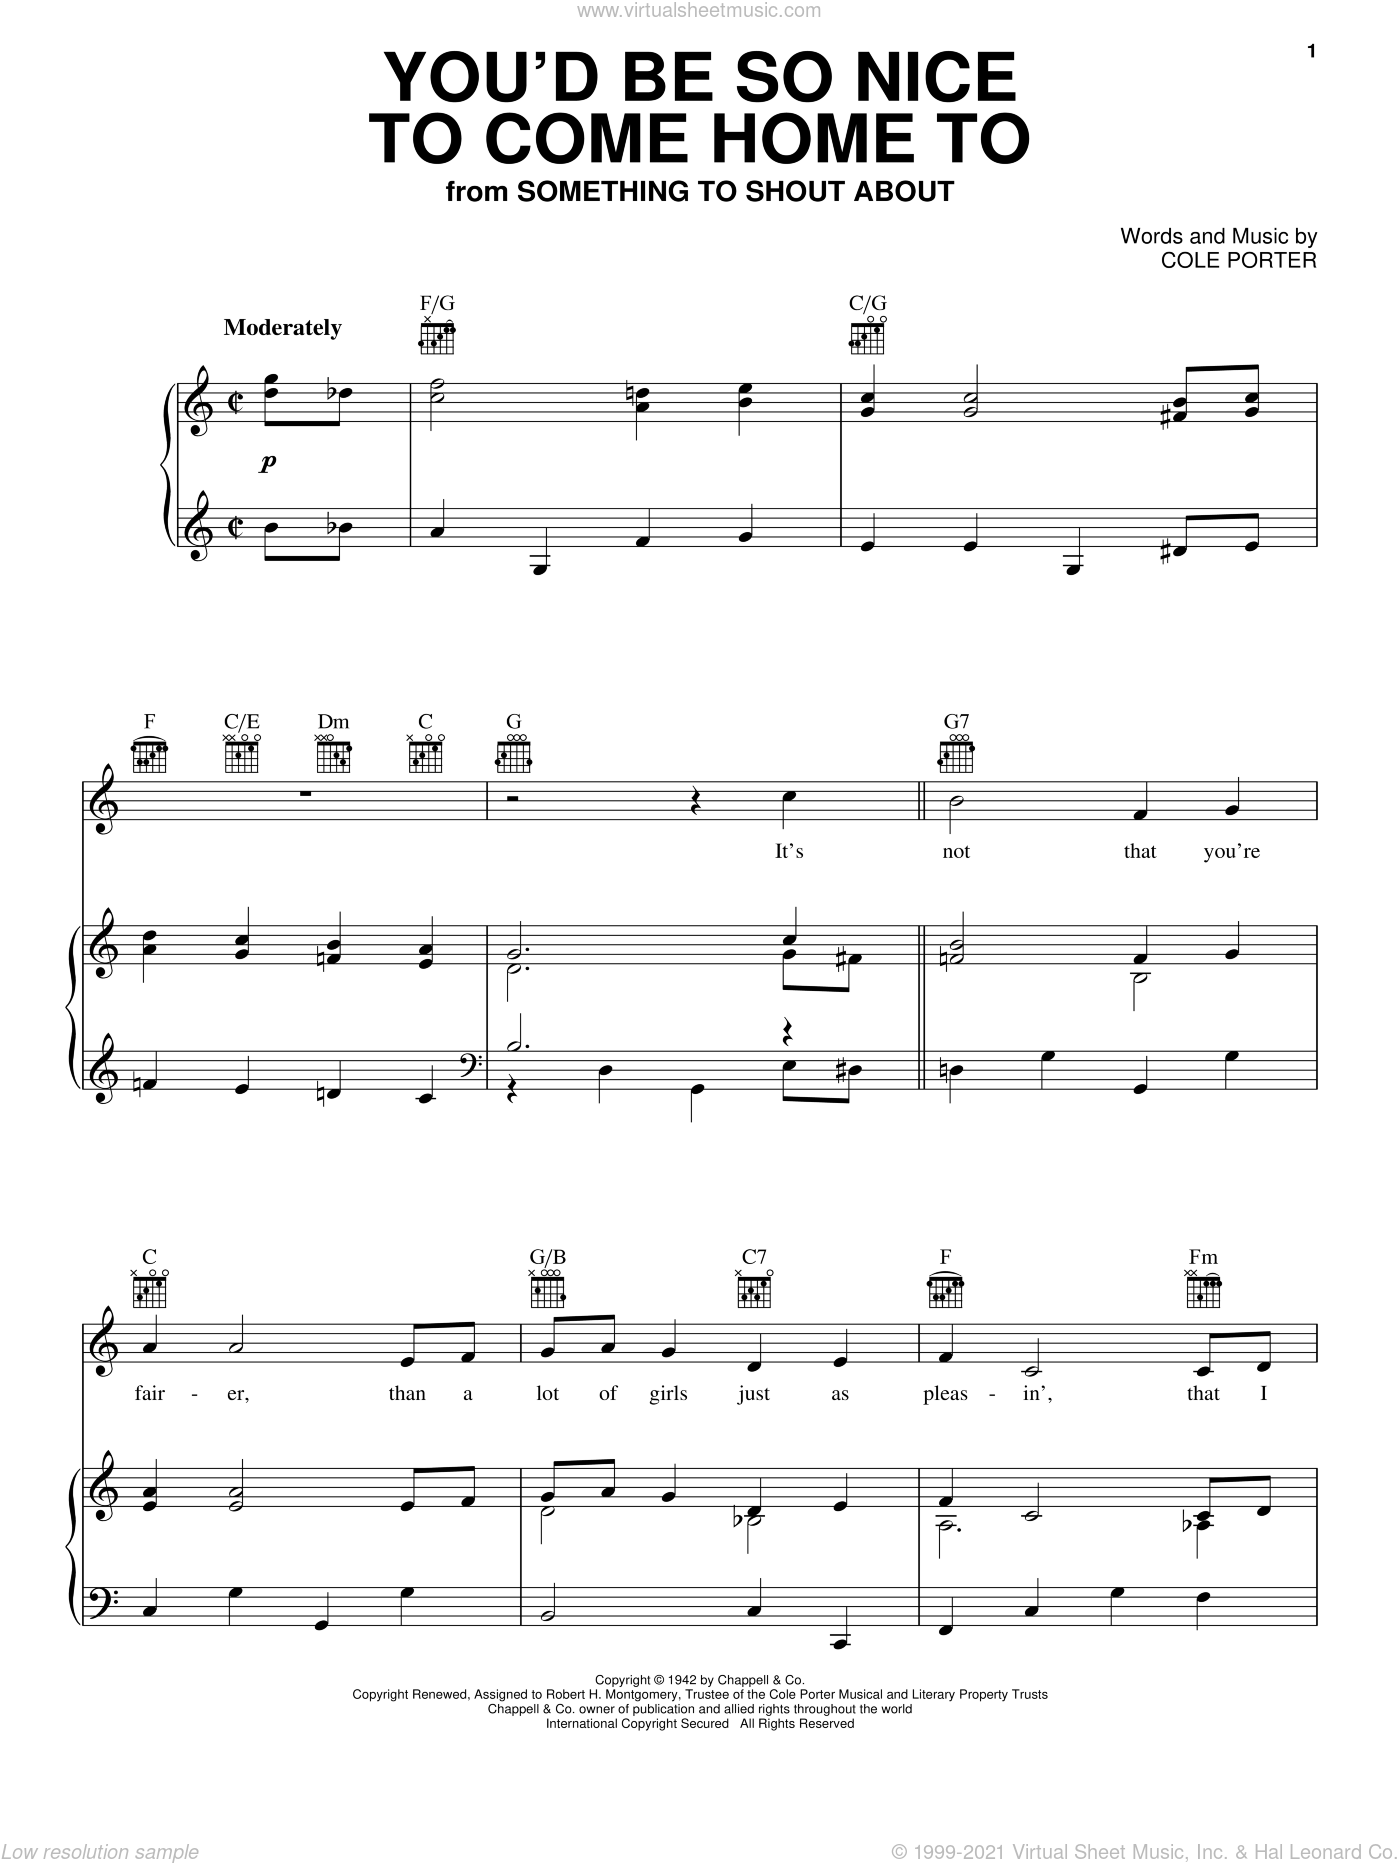 You'd Be So Nice To Come Home To sheet music for voice, piano or guitar by Dinah Shore